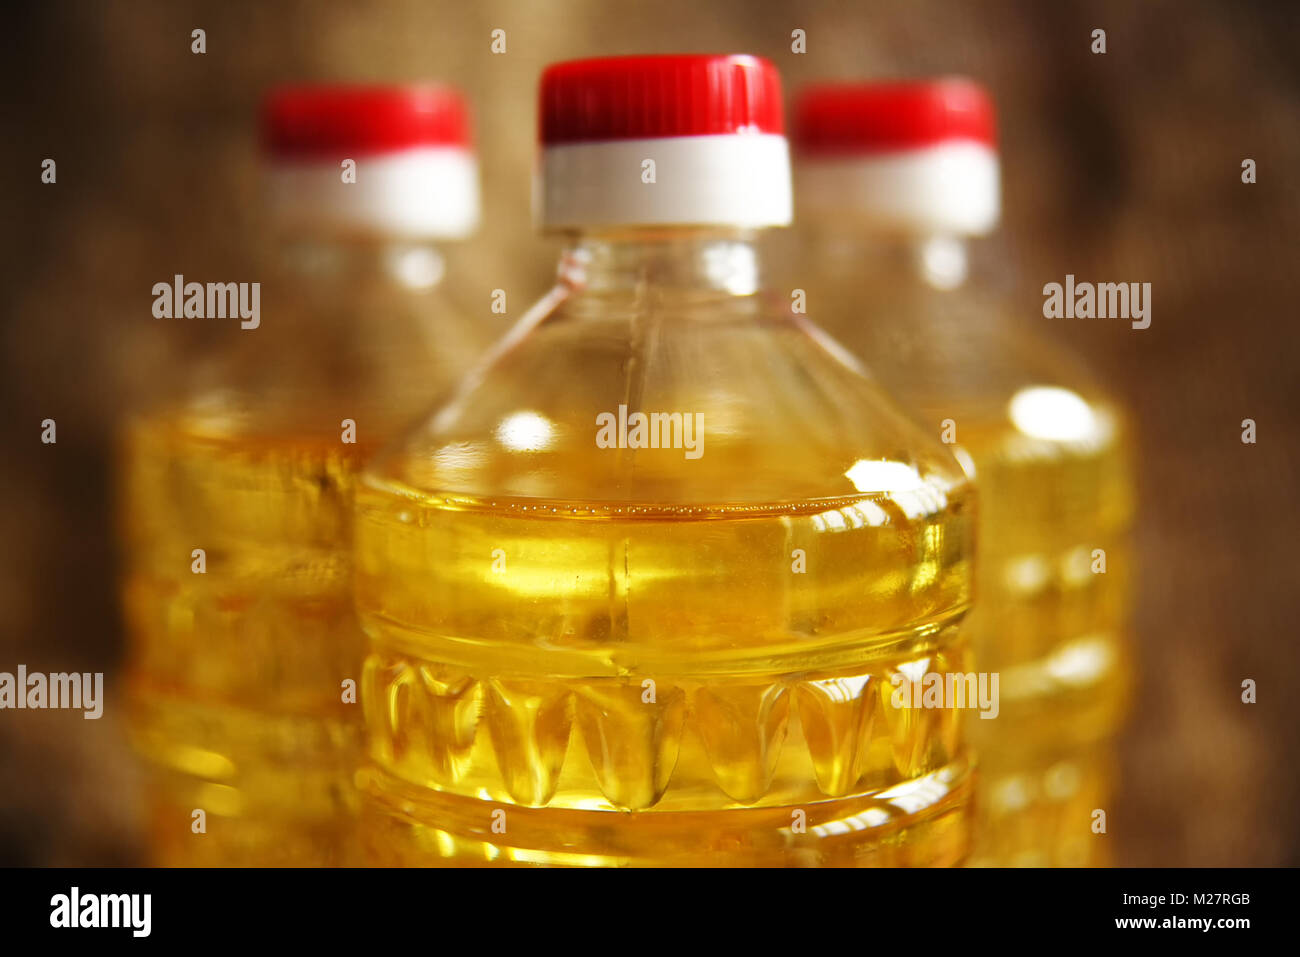 bottles with sunflower oil on a background of burlap - Stock Image